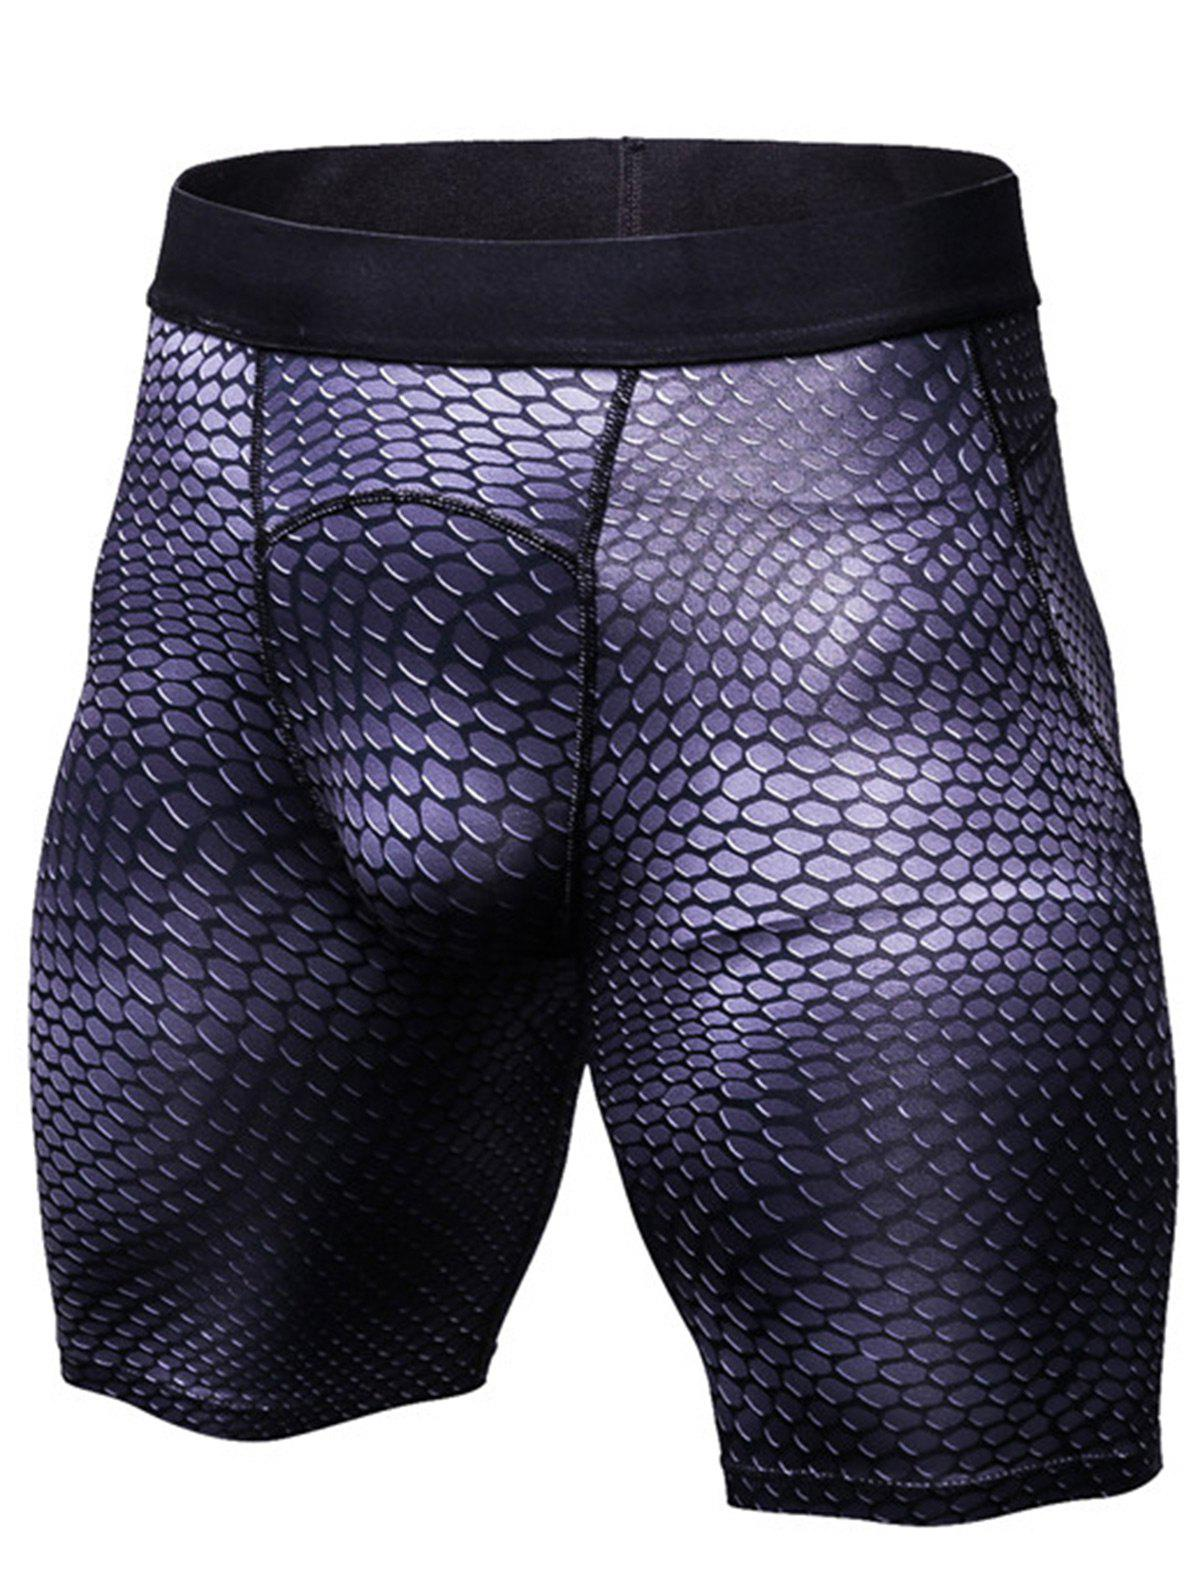 3D Geometric Print Fitted Gym Shorts - PURPLE M